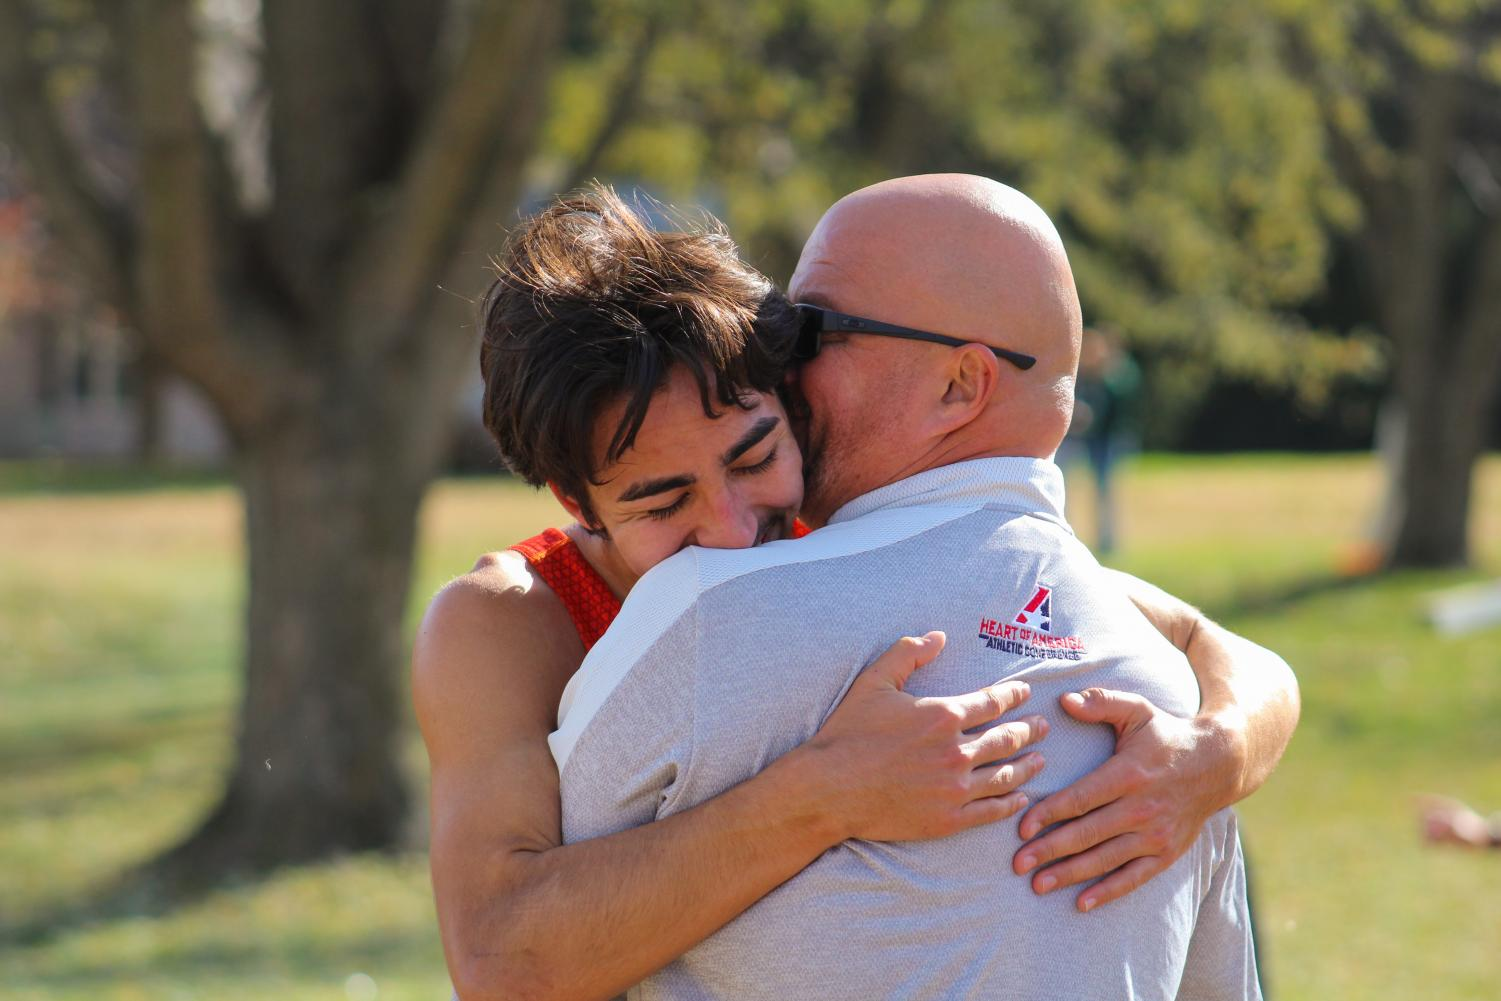 Senior Adam Preston embraces coach Tim Byers after his 12th place finish. Preston left it all on the course and finished fourth on the team, earning him a spot on the men's national squad of seven runners.